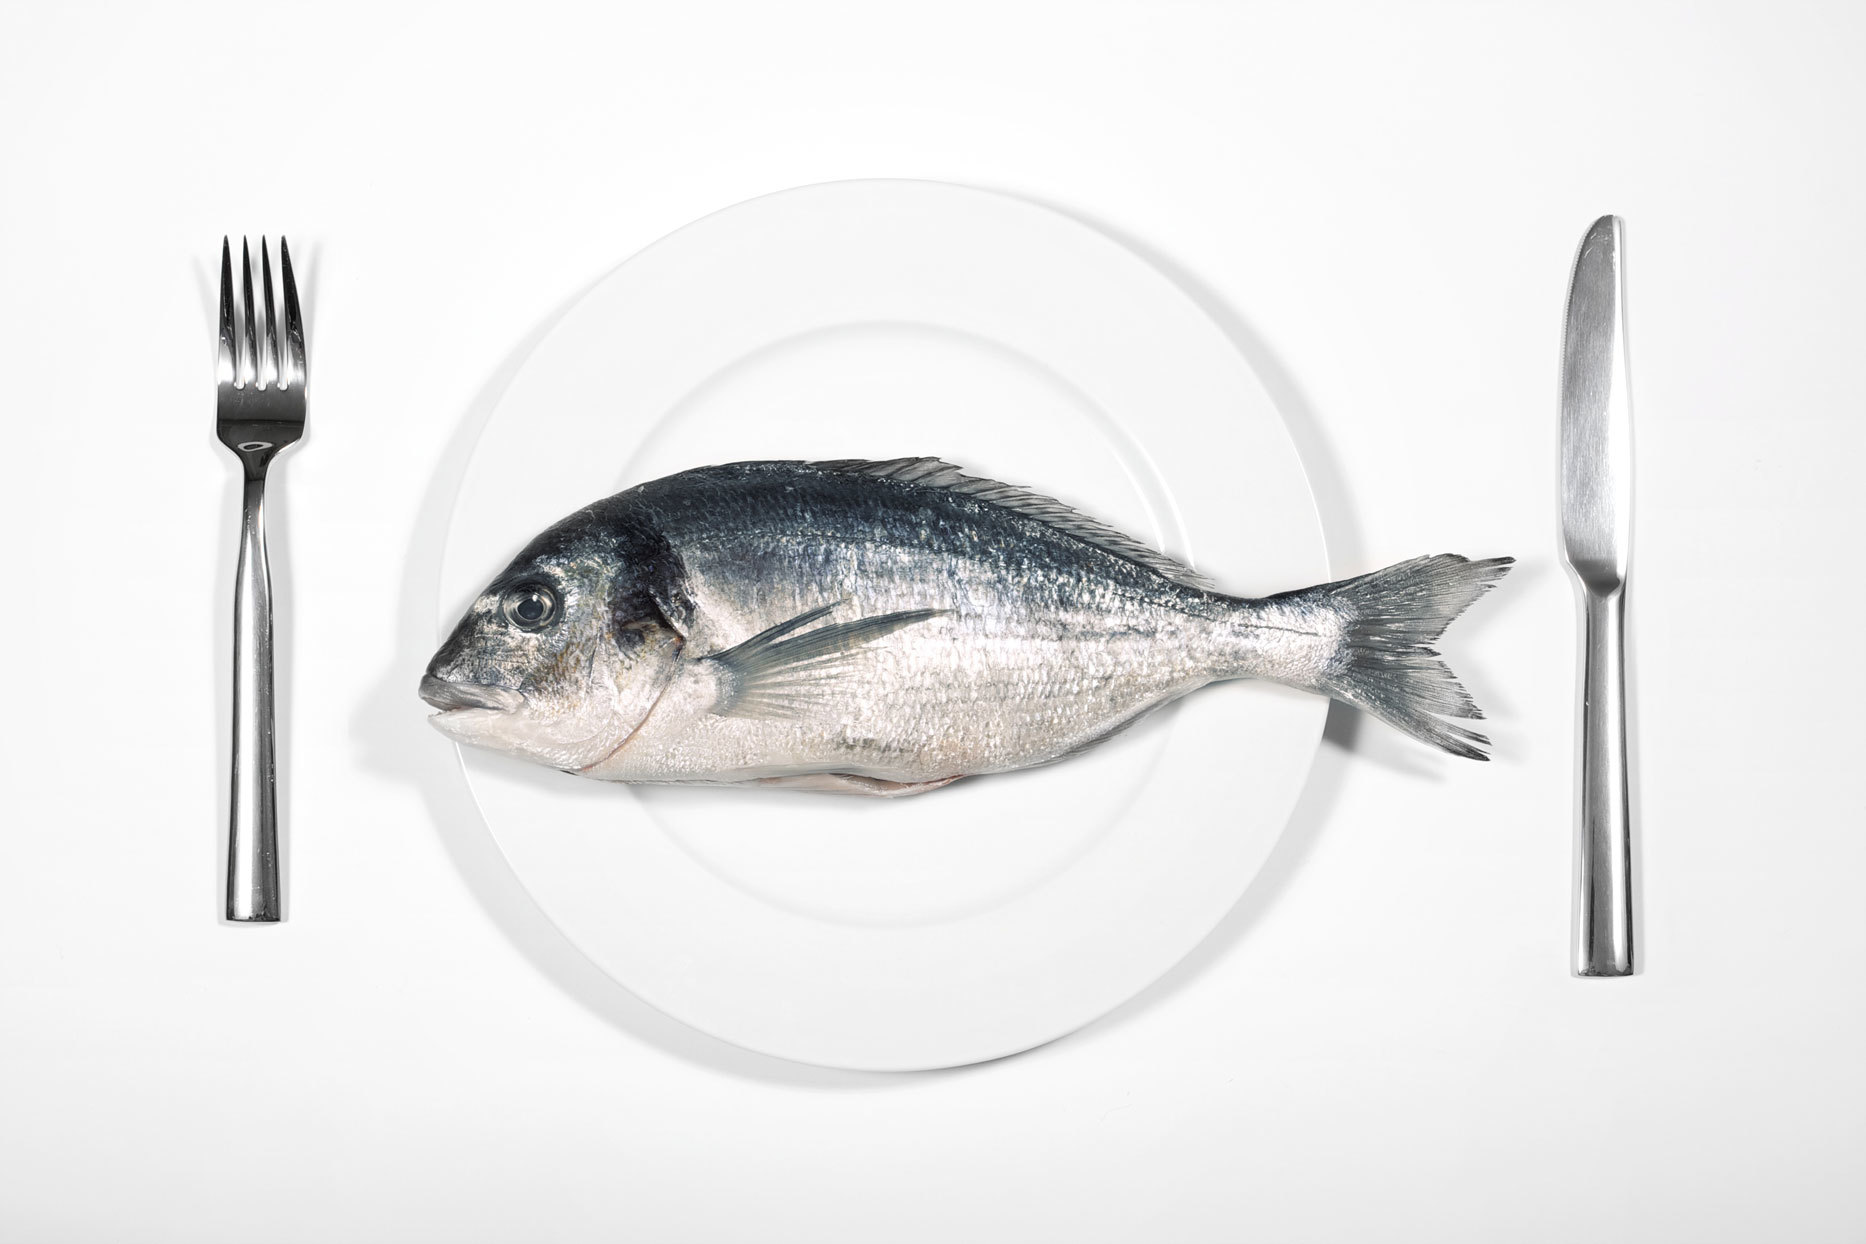 whole fish on a white plate